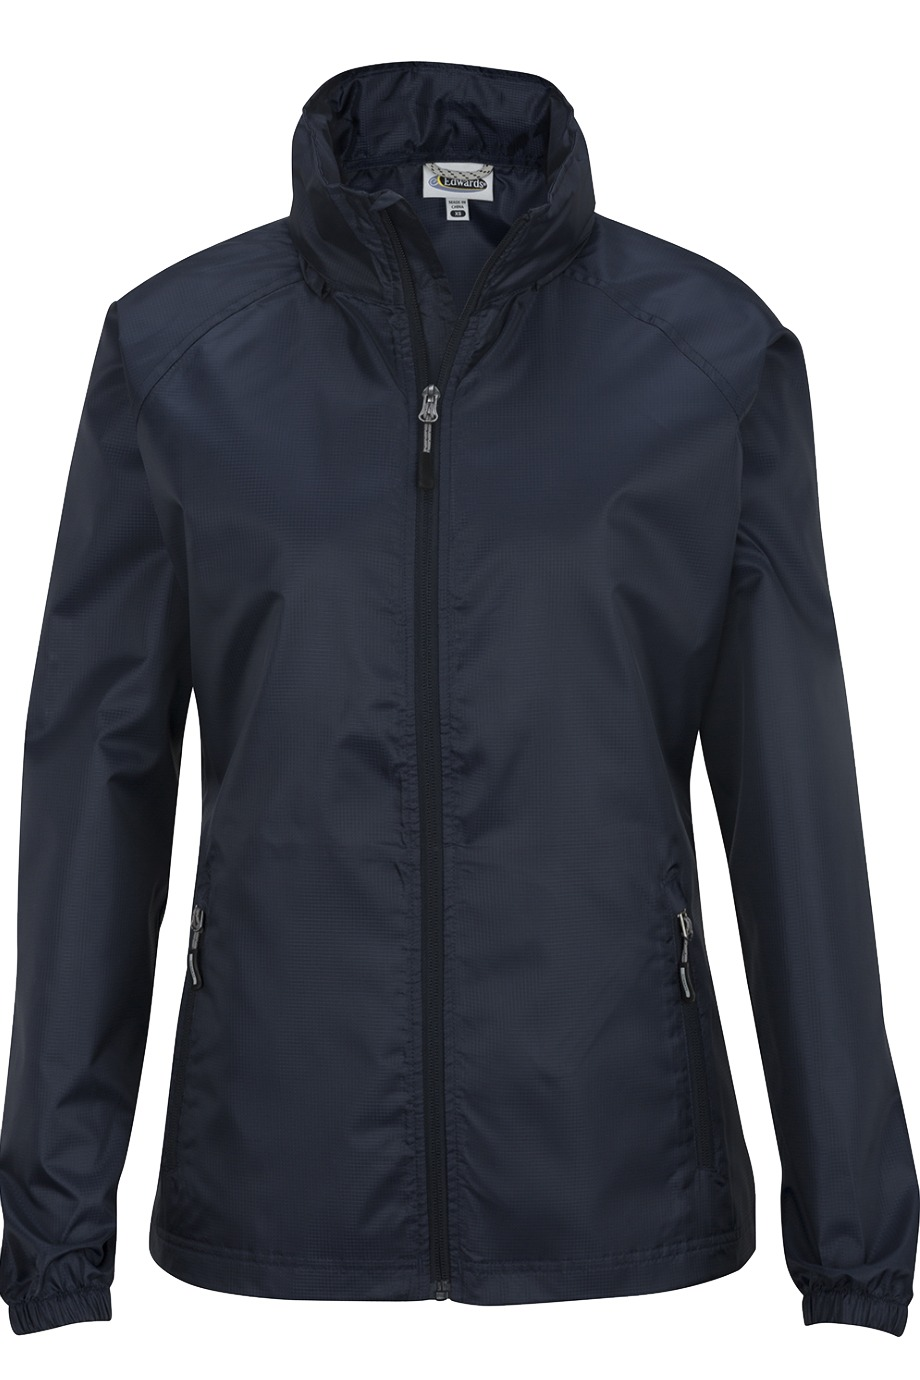 Edwards Garment 6435 - Ladies' Hooded Rain Jacket